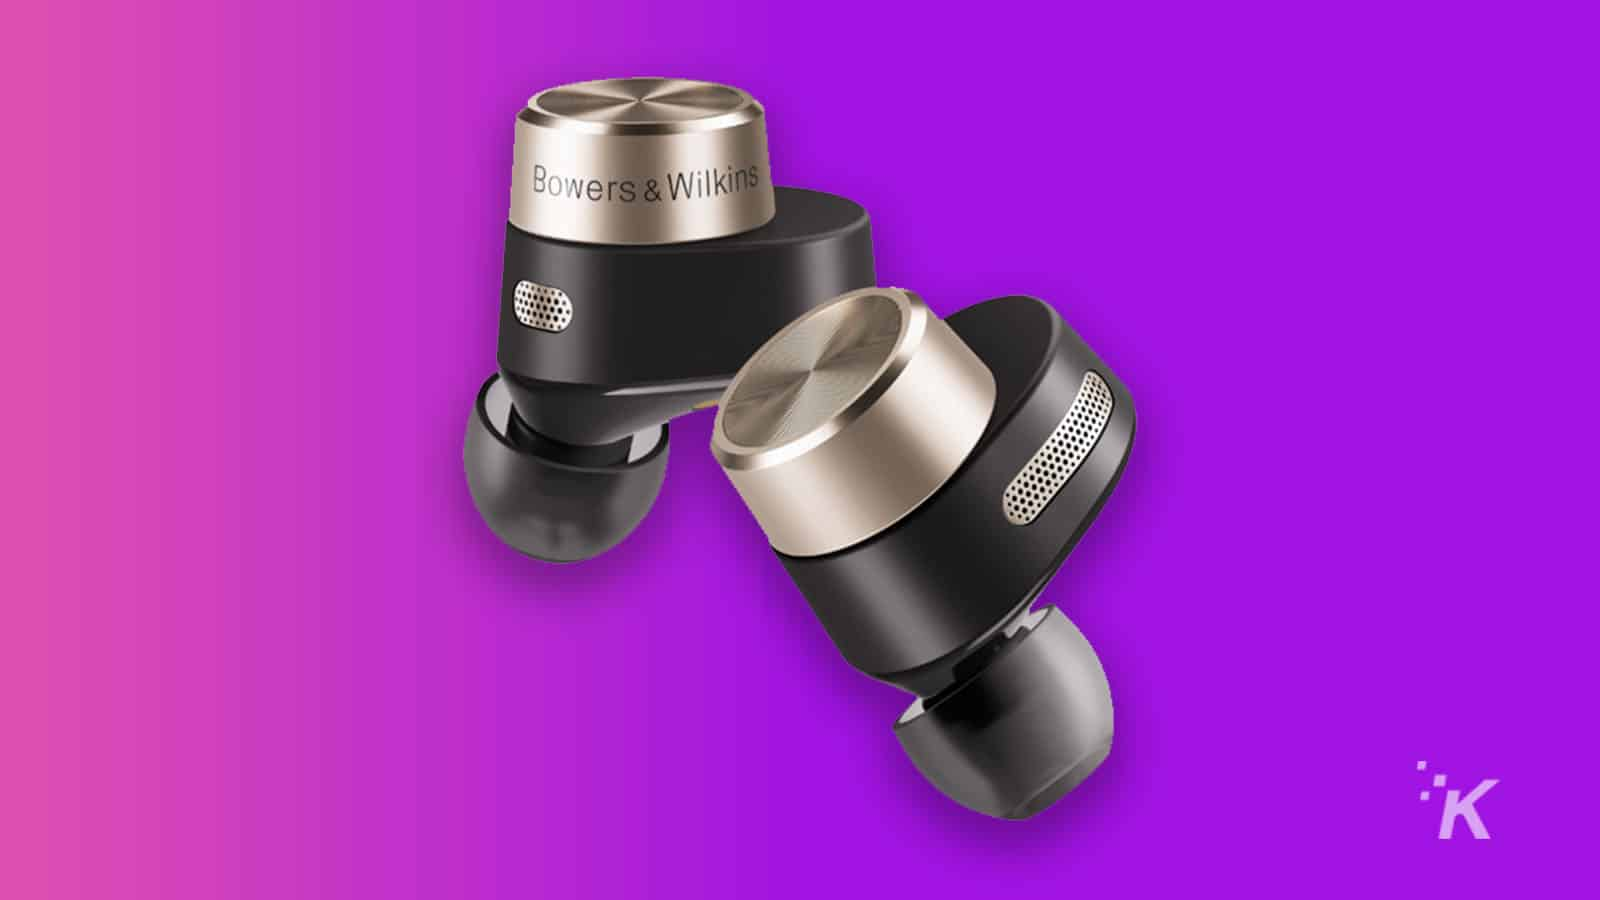 bowers and wilkins pi7 wireless earbuds with case